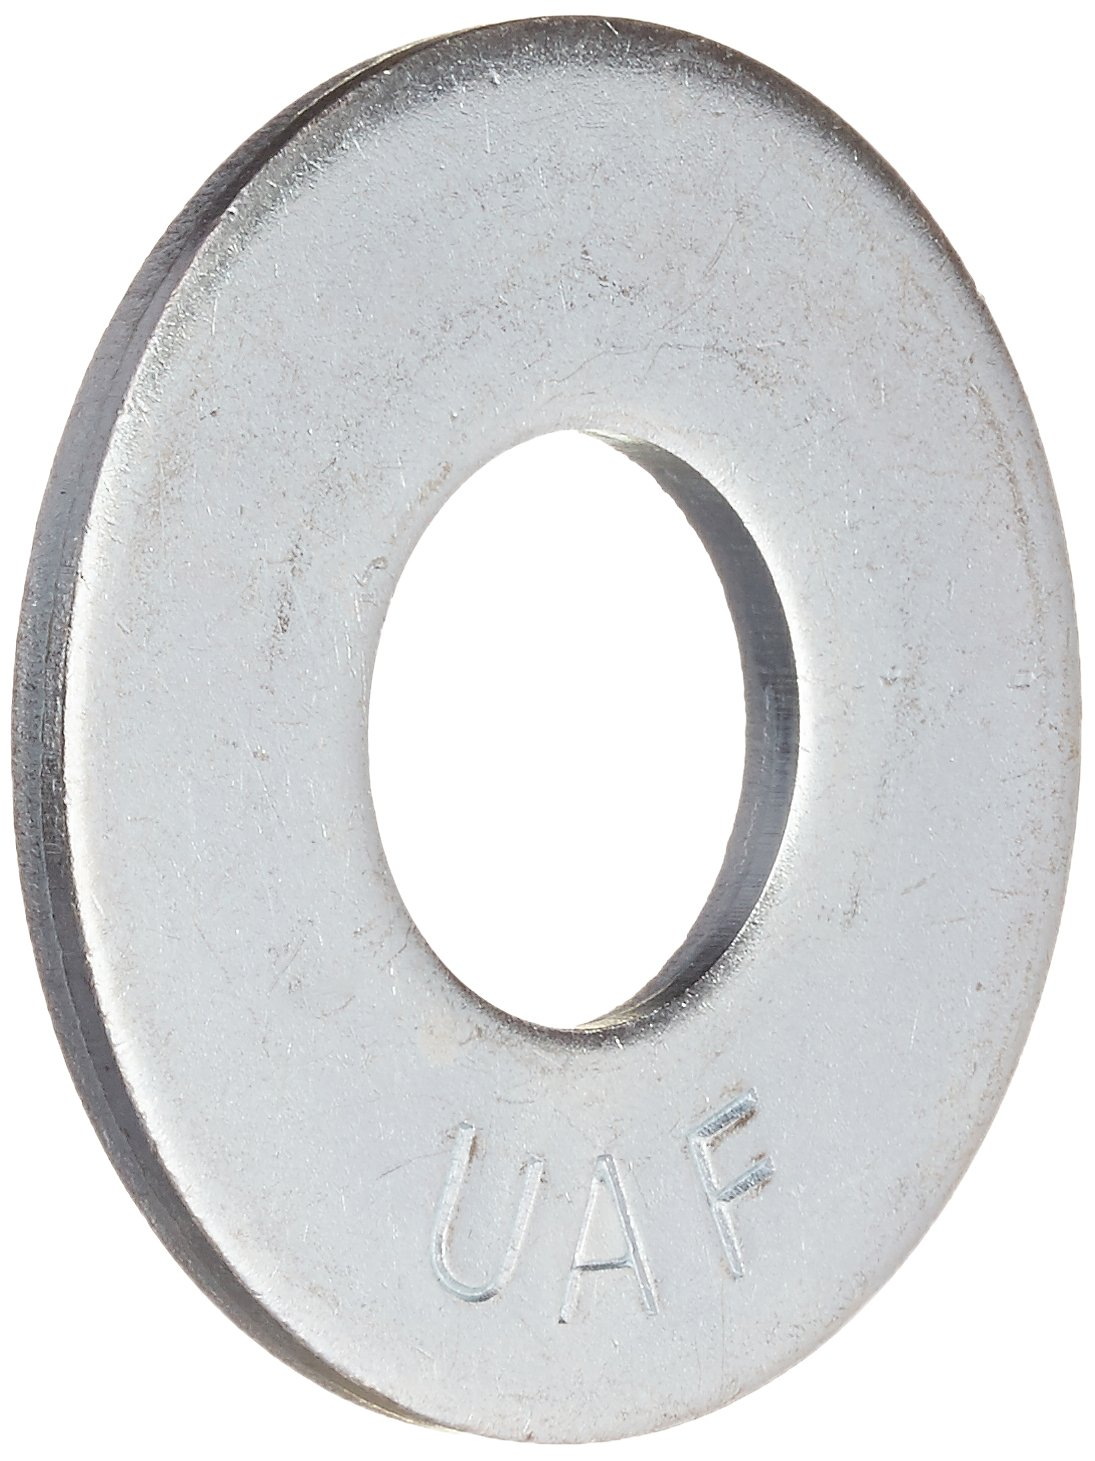 The Hillman Group 270067 Flat Zinc Washer, 1/2-Inch, 50-Pack by The Hillman Group